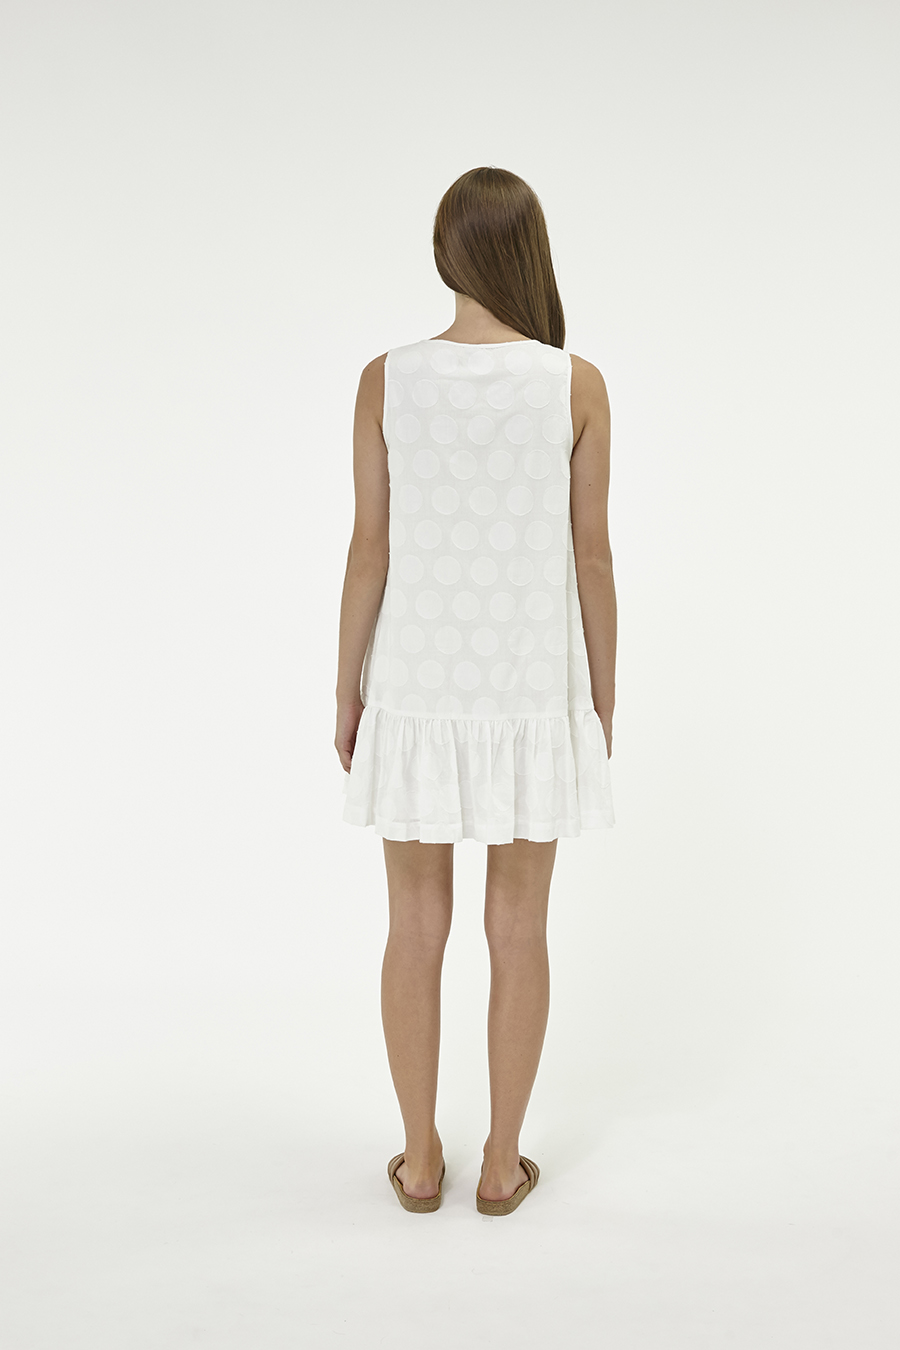 Huffer_Q3-16_W-Spot-Port-Dress_White-03